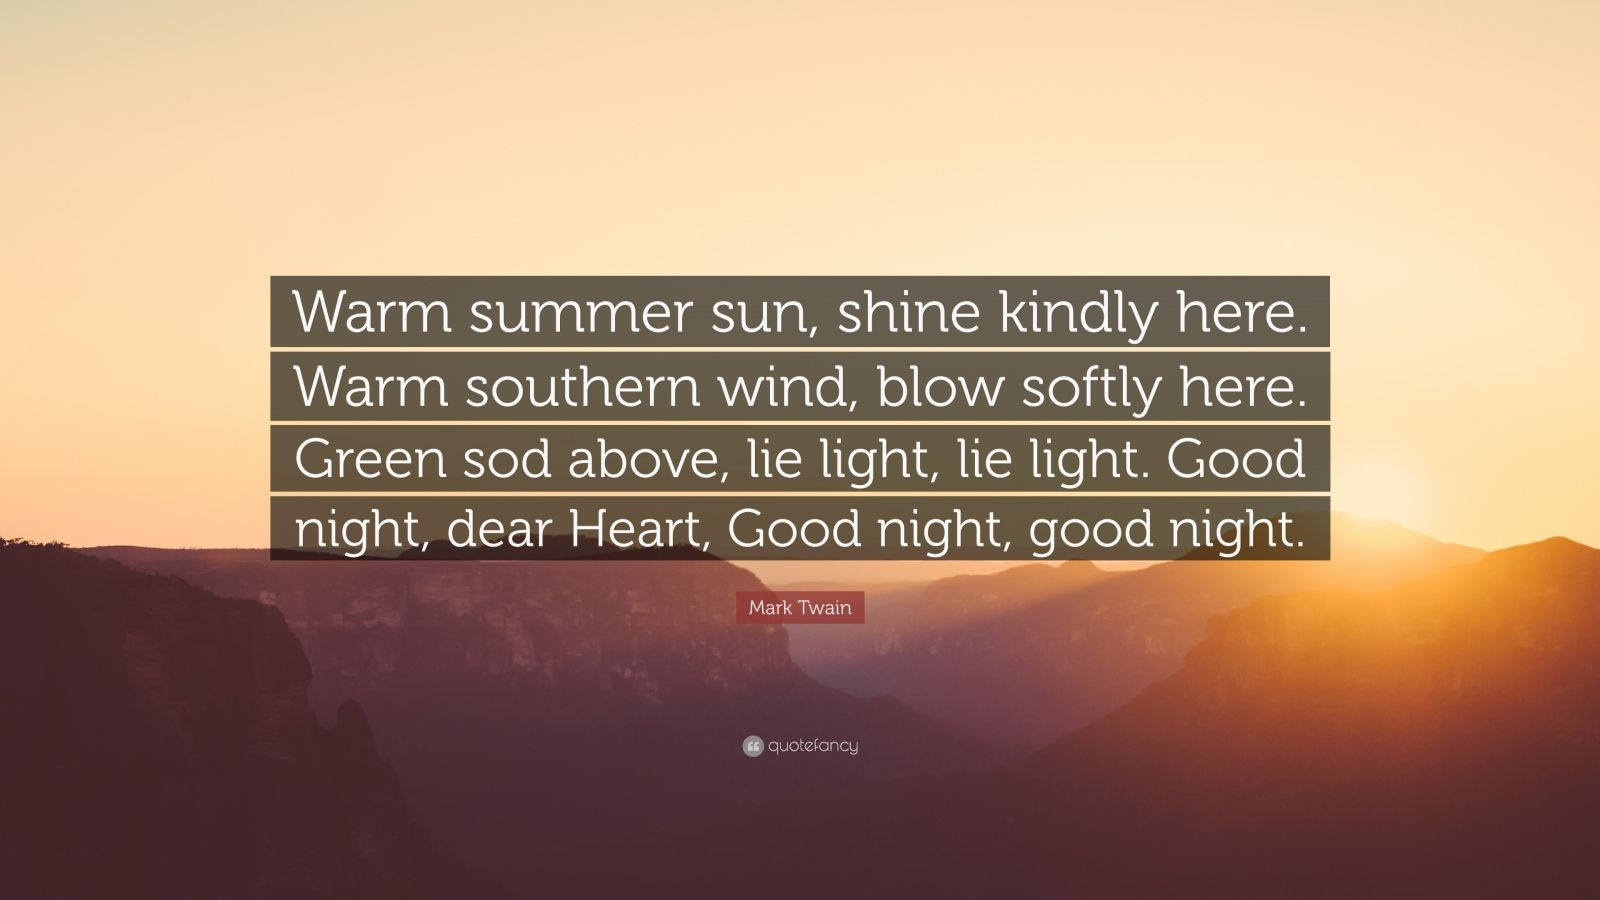 """Mark Twain Quote: """"Warm summer sun, shine kindly here. Warm southern wind, blow softly here. Green sod above, lie light, lie light. Good night, dear Heart, Good night, good night."""""""